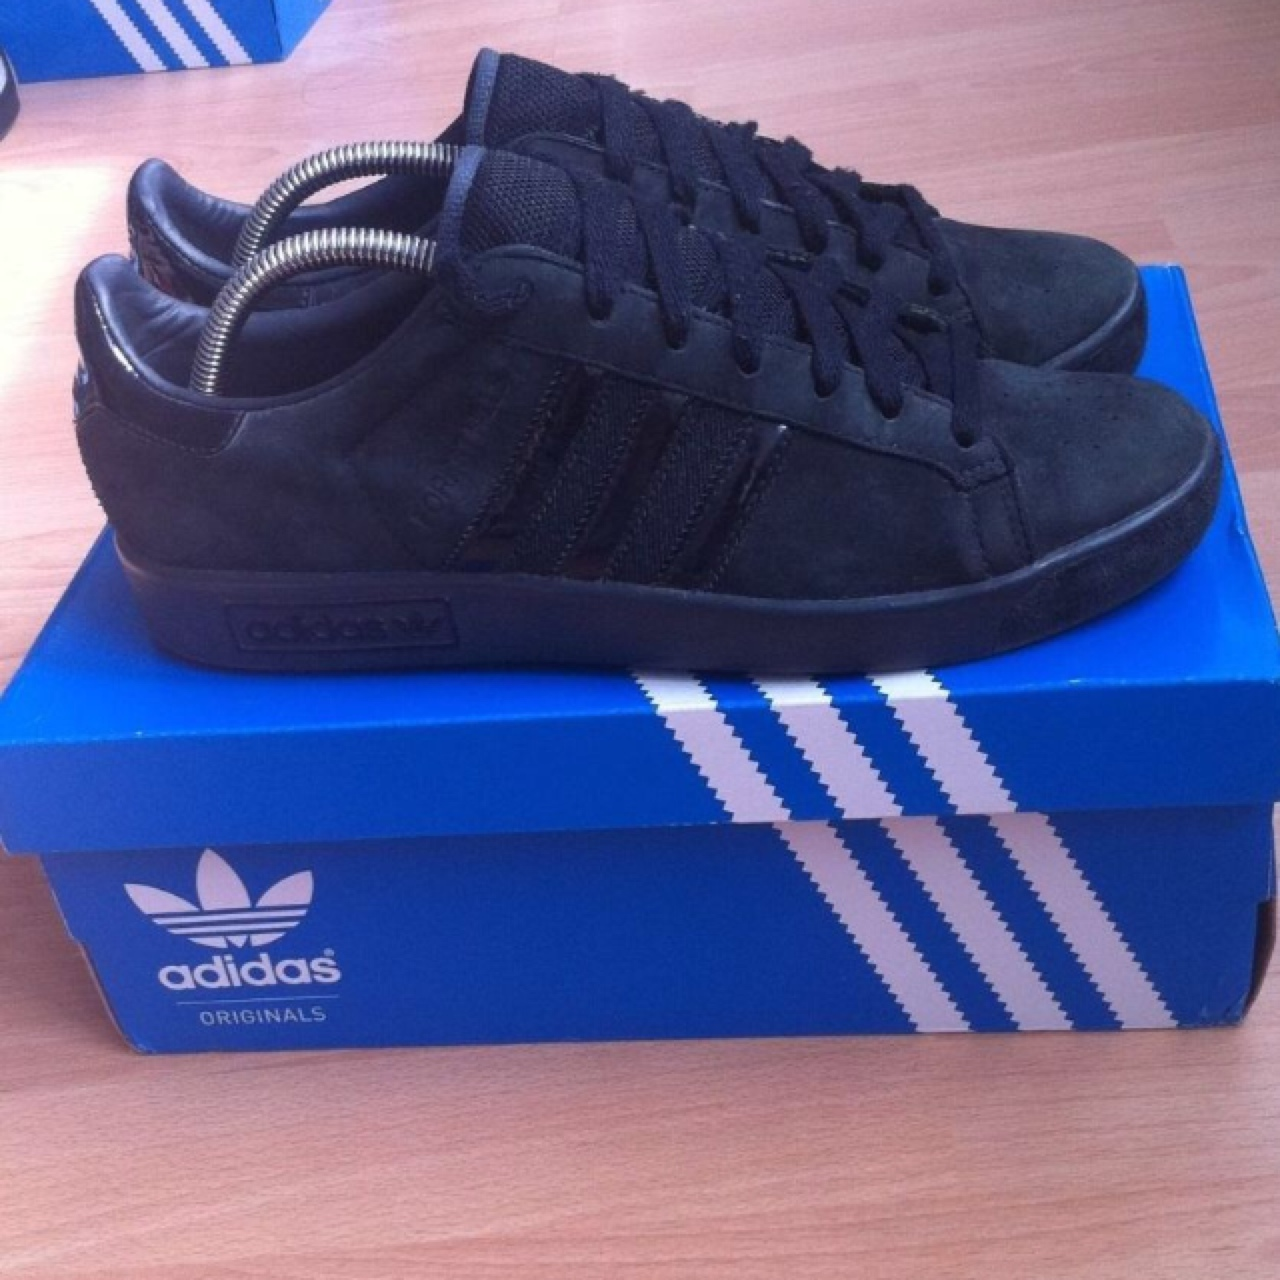 Adidas Forest Hills in all black